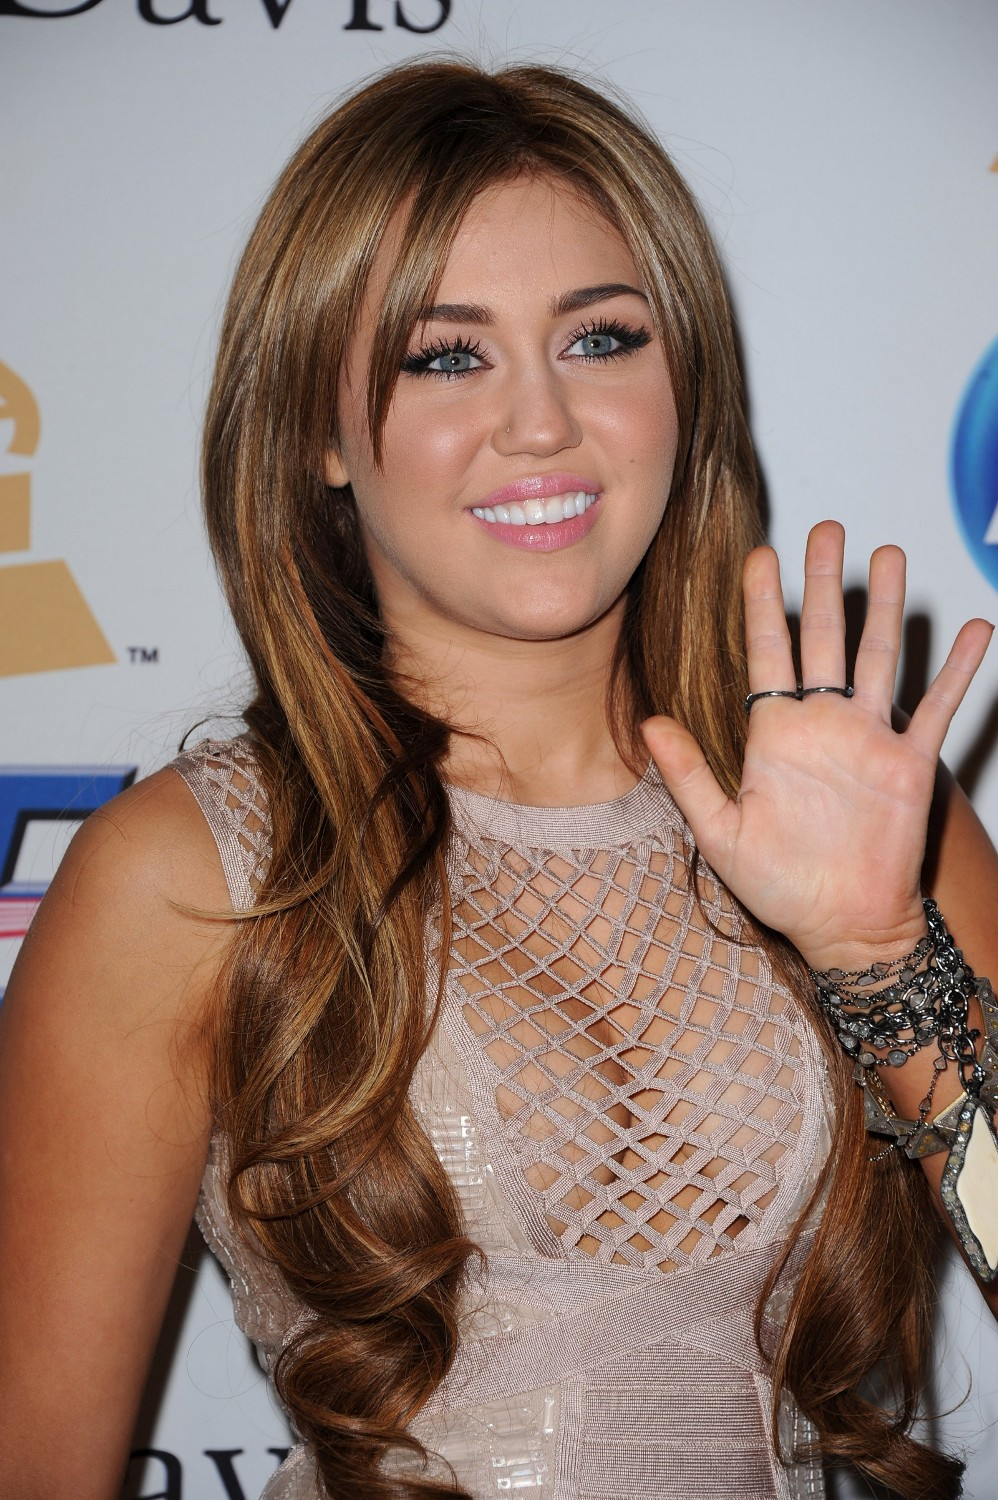 Miley Cyrus Expose Her Big Breasts